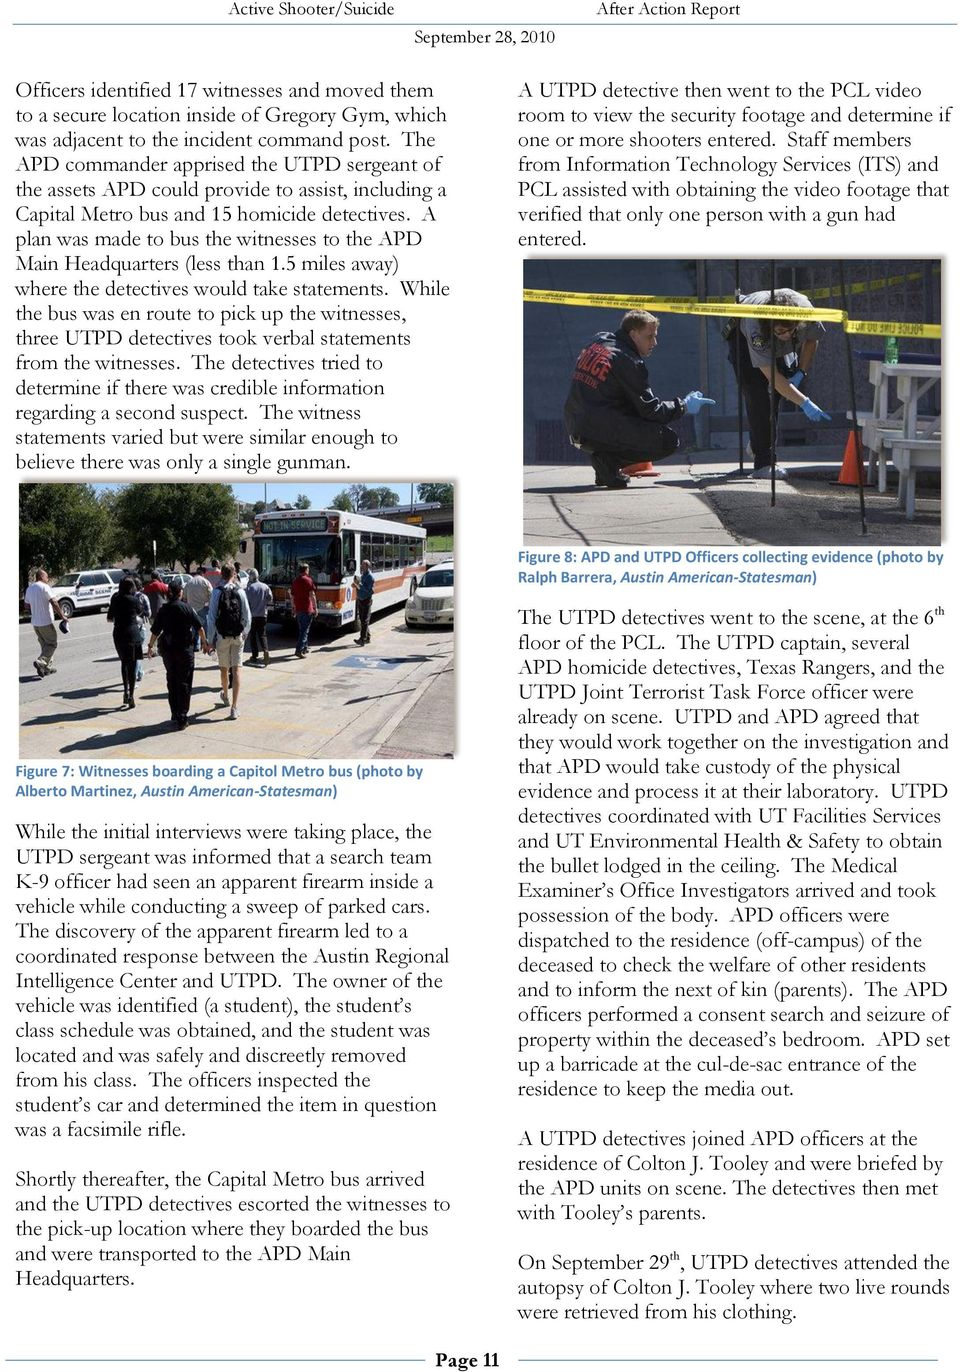 A plan was made to bus the witnesses to the APD Main Headquarters (less than 1.5 miles away) where the detectives would take statements.